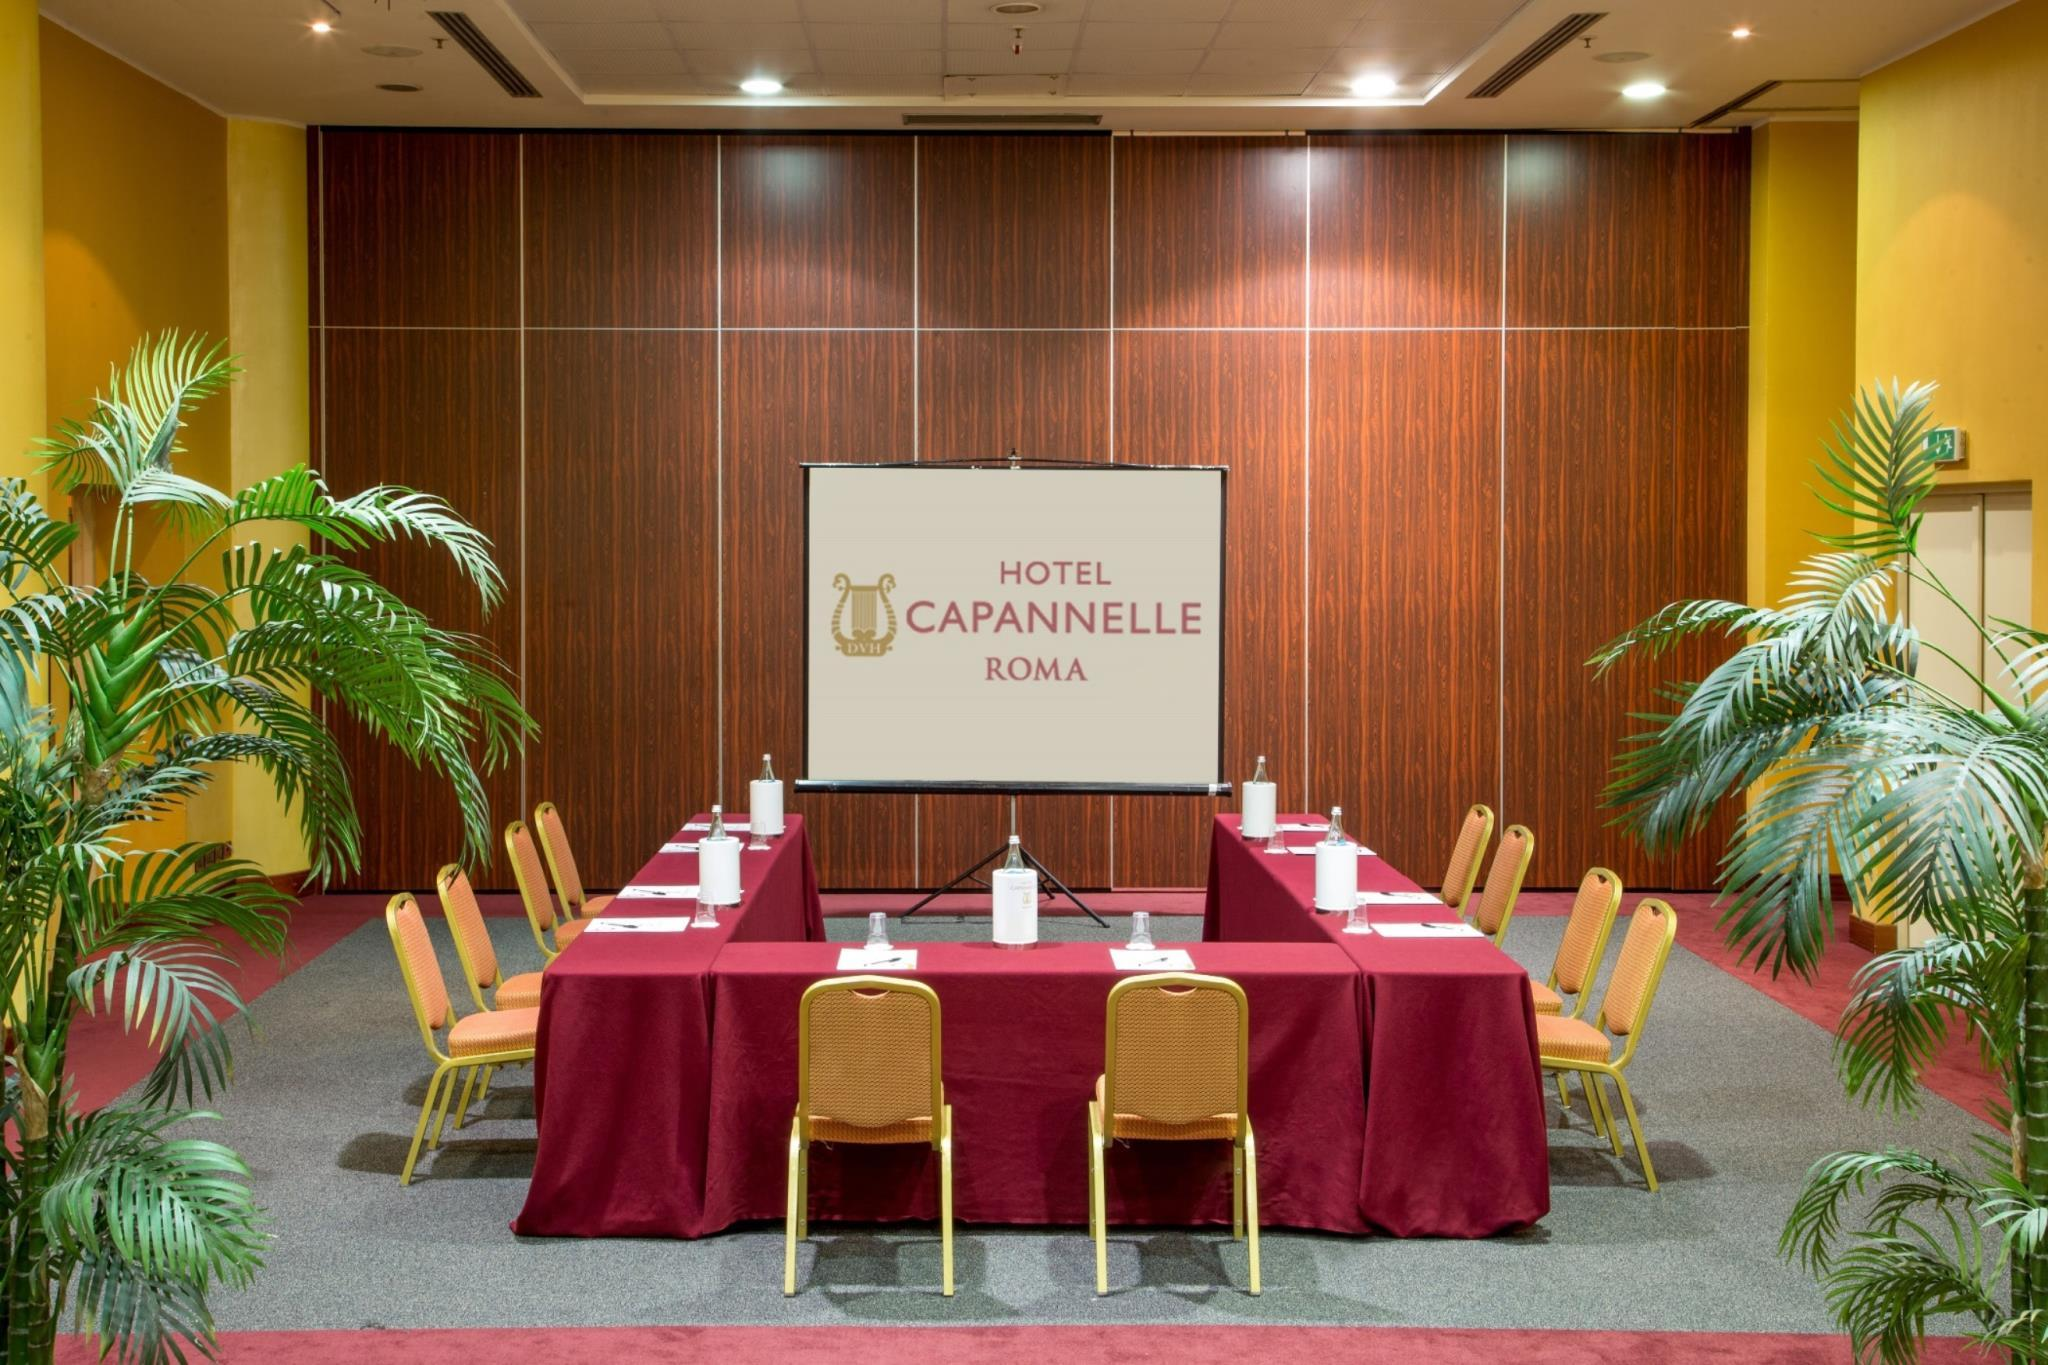 Hotel Capannelle